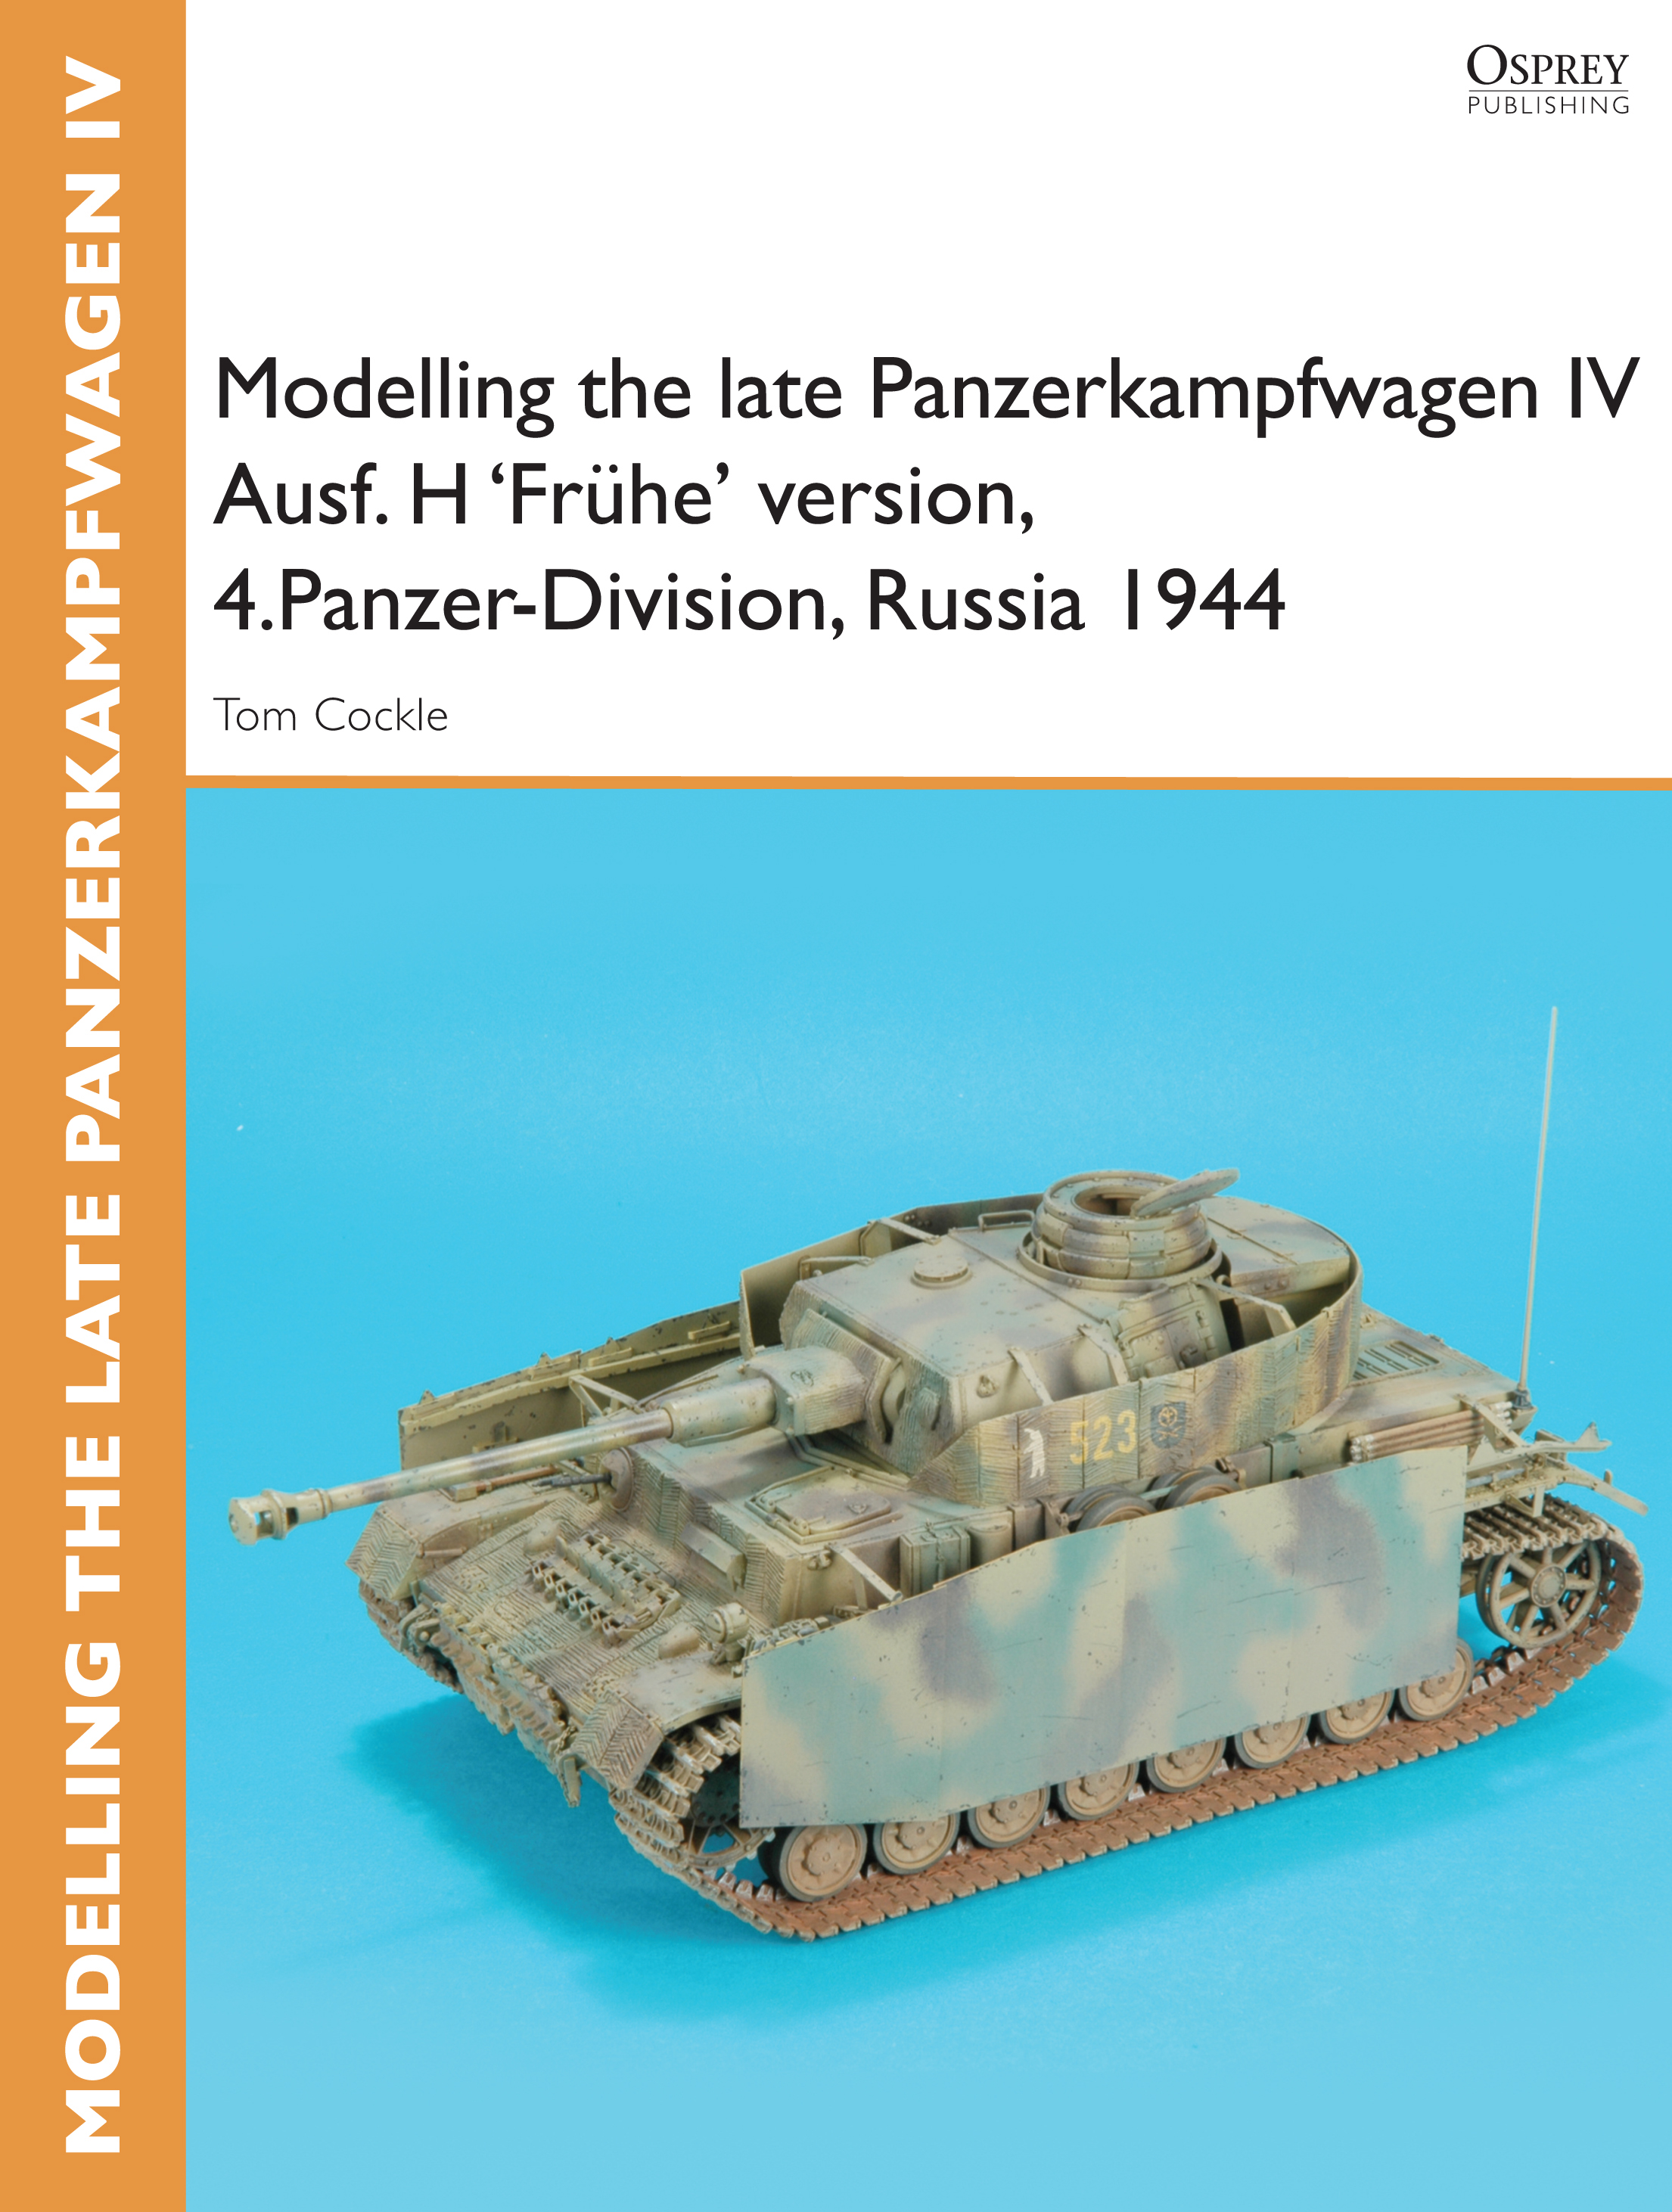 Modelling the late Panzerkampfwagen IV Ausf. H 'Fr�he' version,  4.Panzer-Division,  Russia 1944